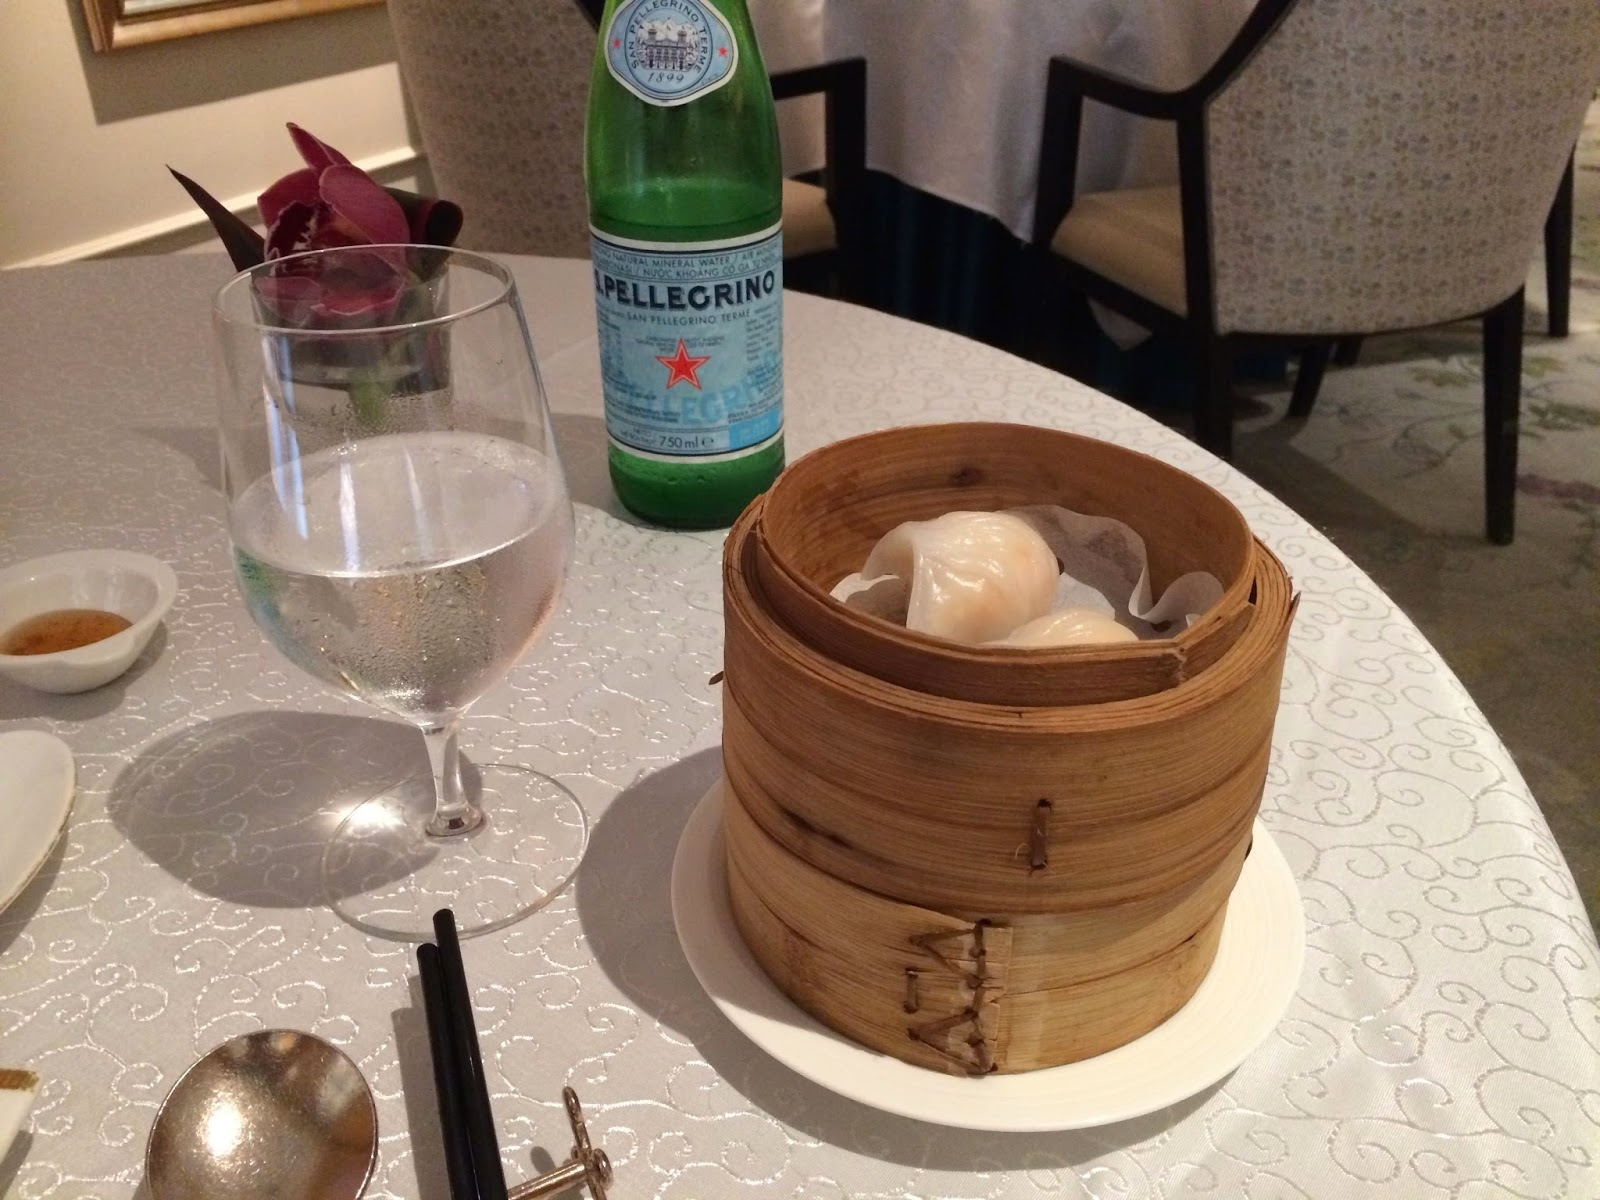 Dim Sum at Yang Ting Singapore